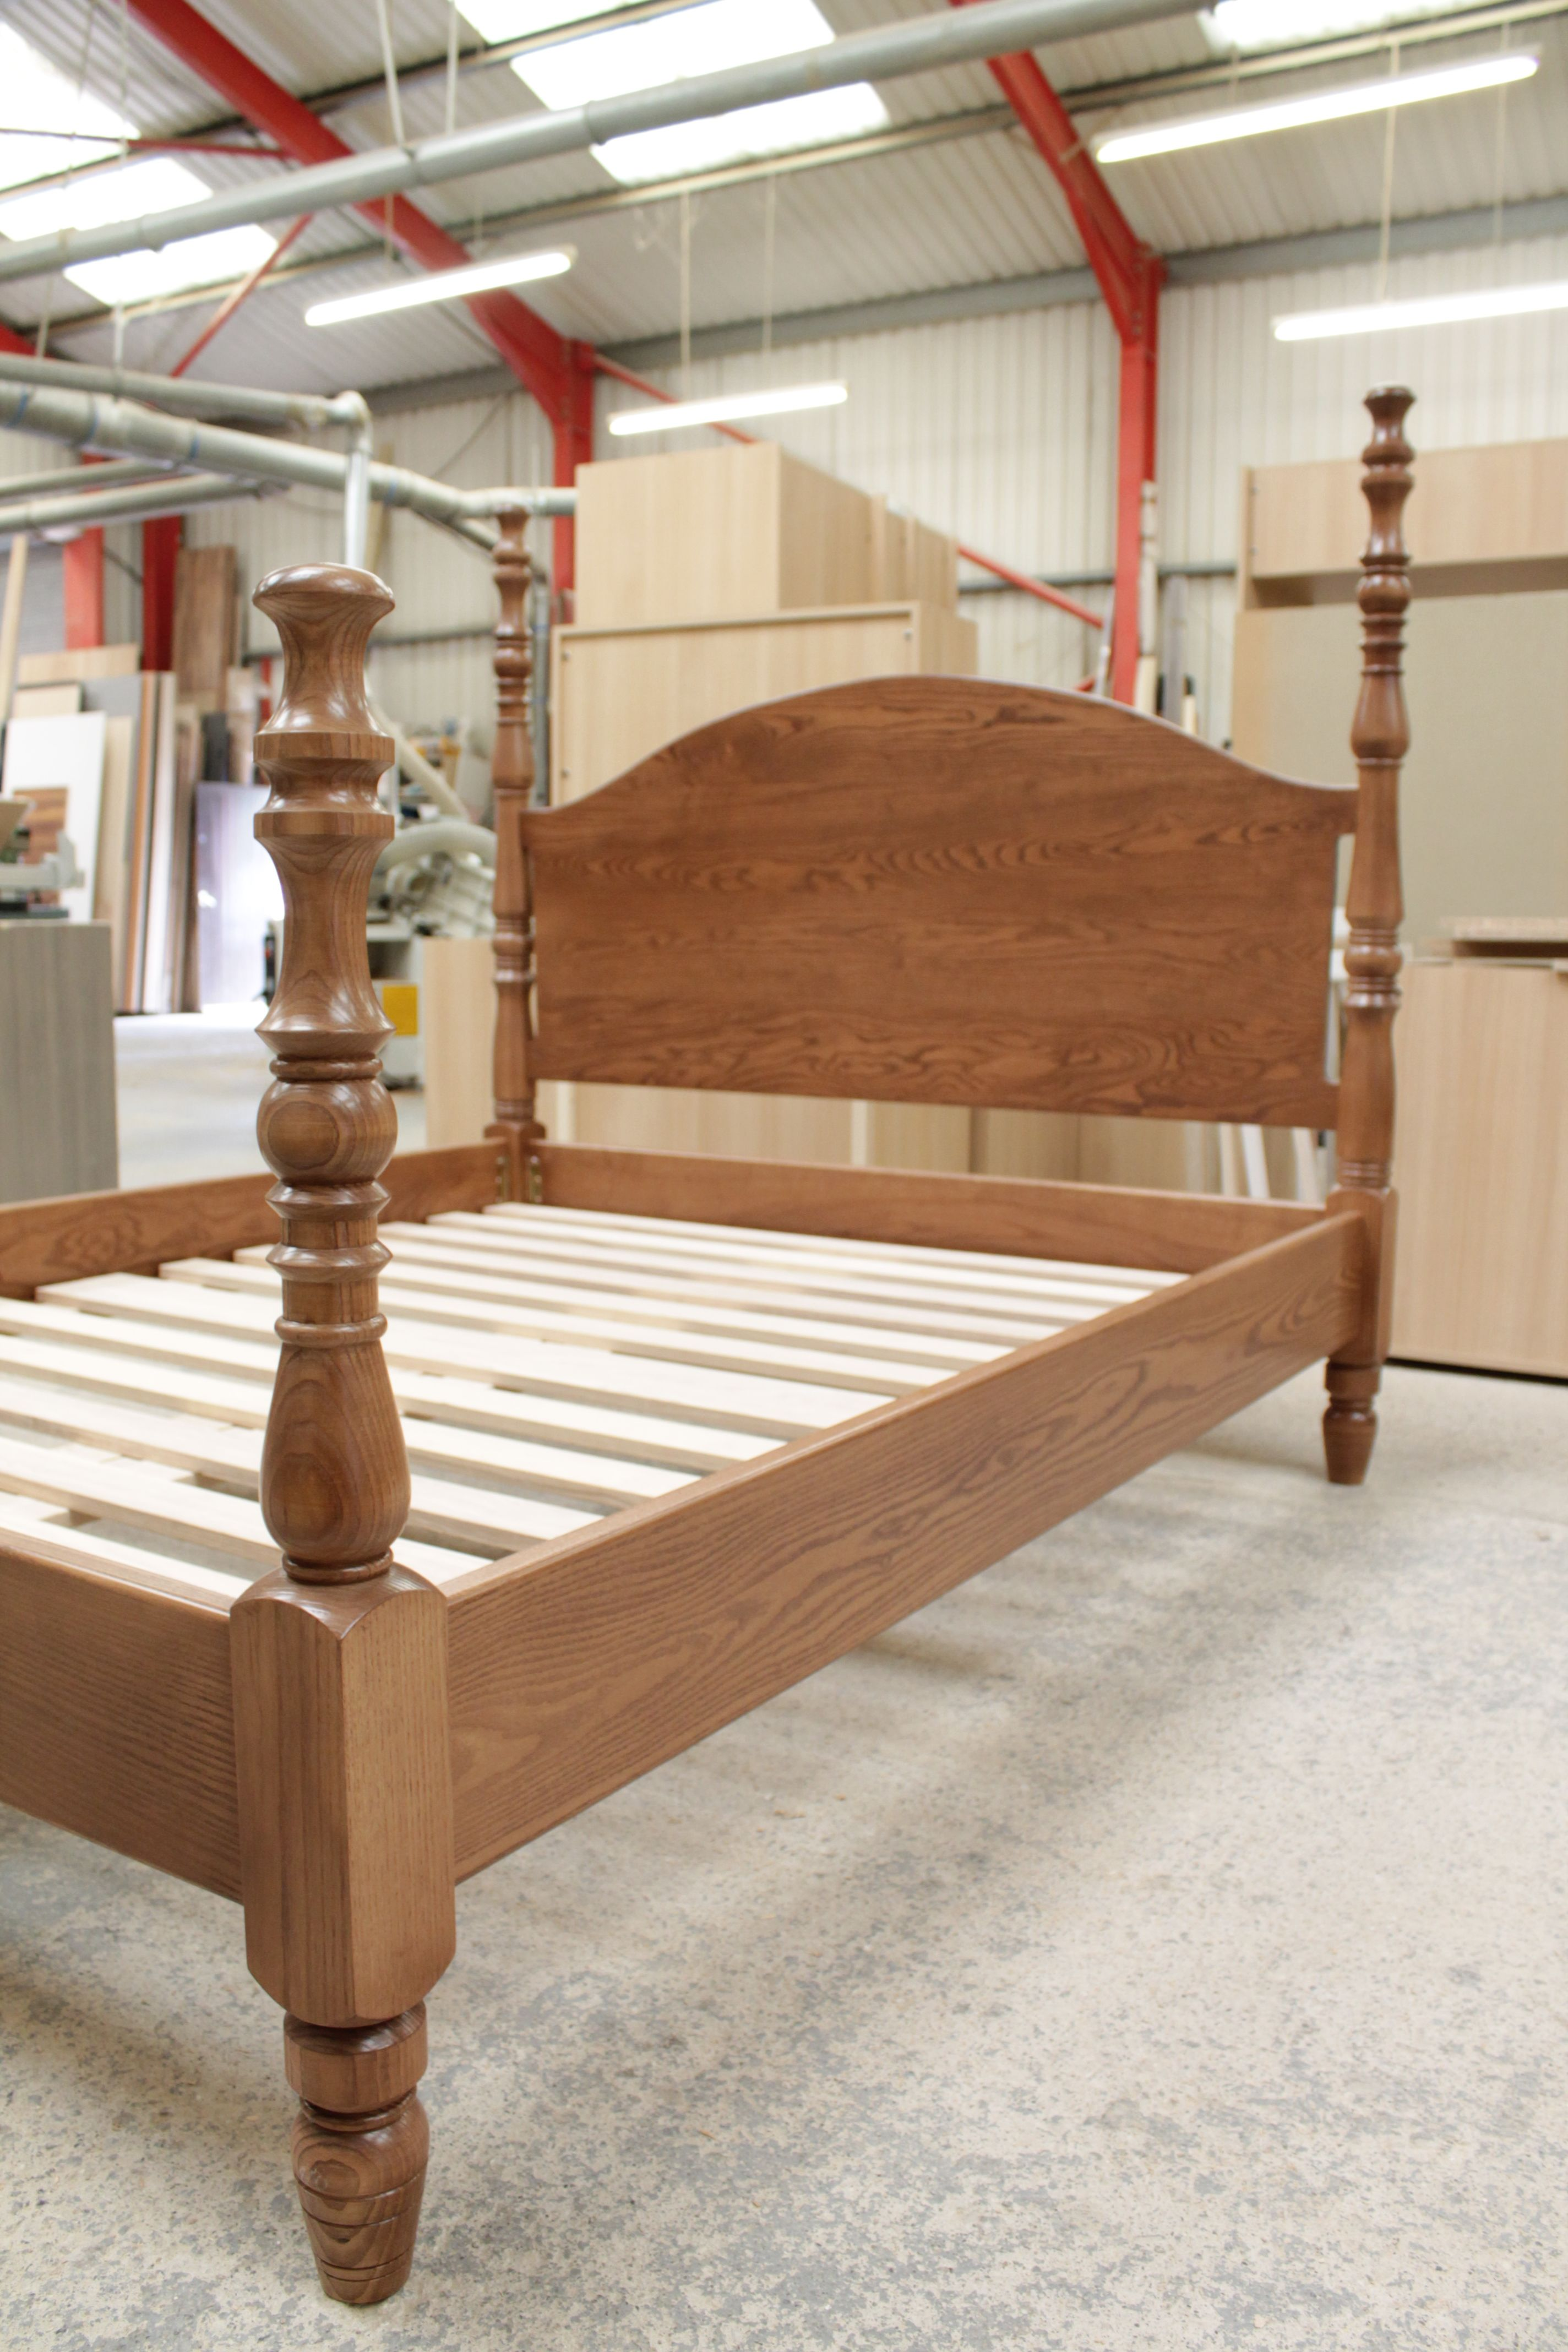 Our Completed And Assembled Bespoke Bed Wooden Bed Luxury